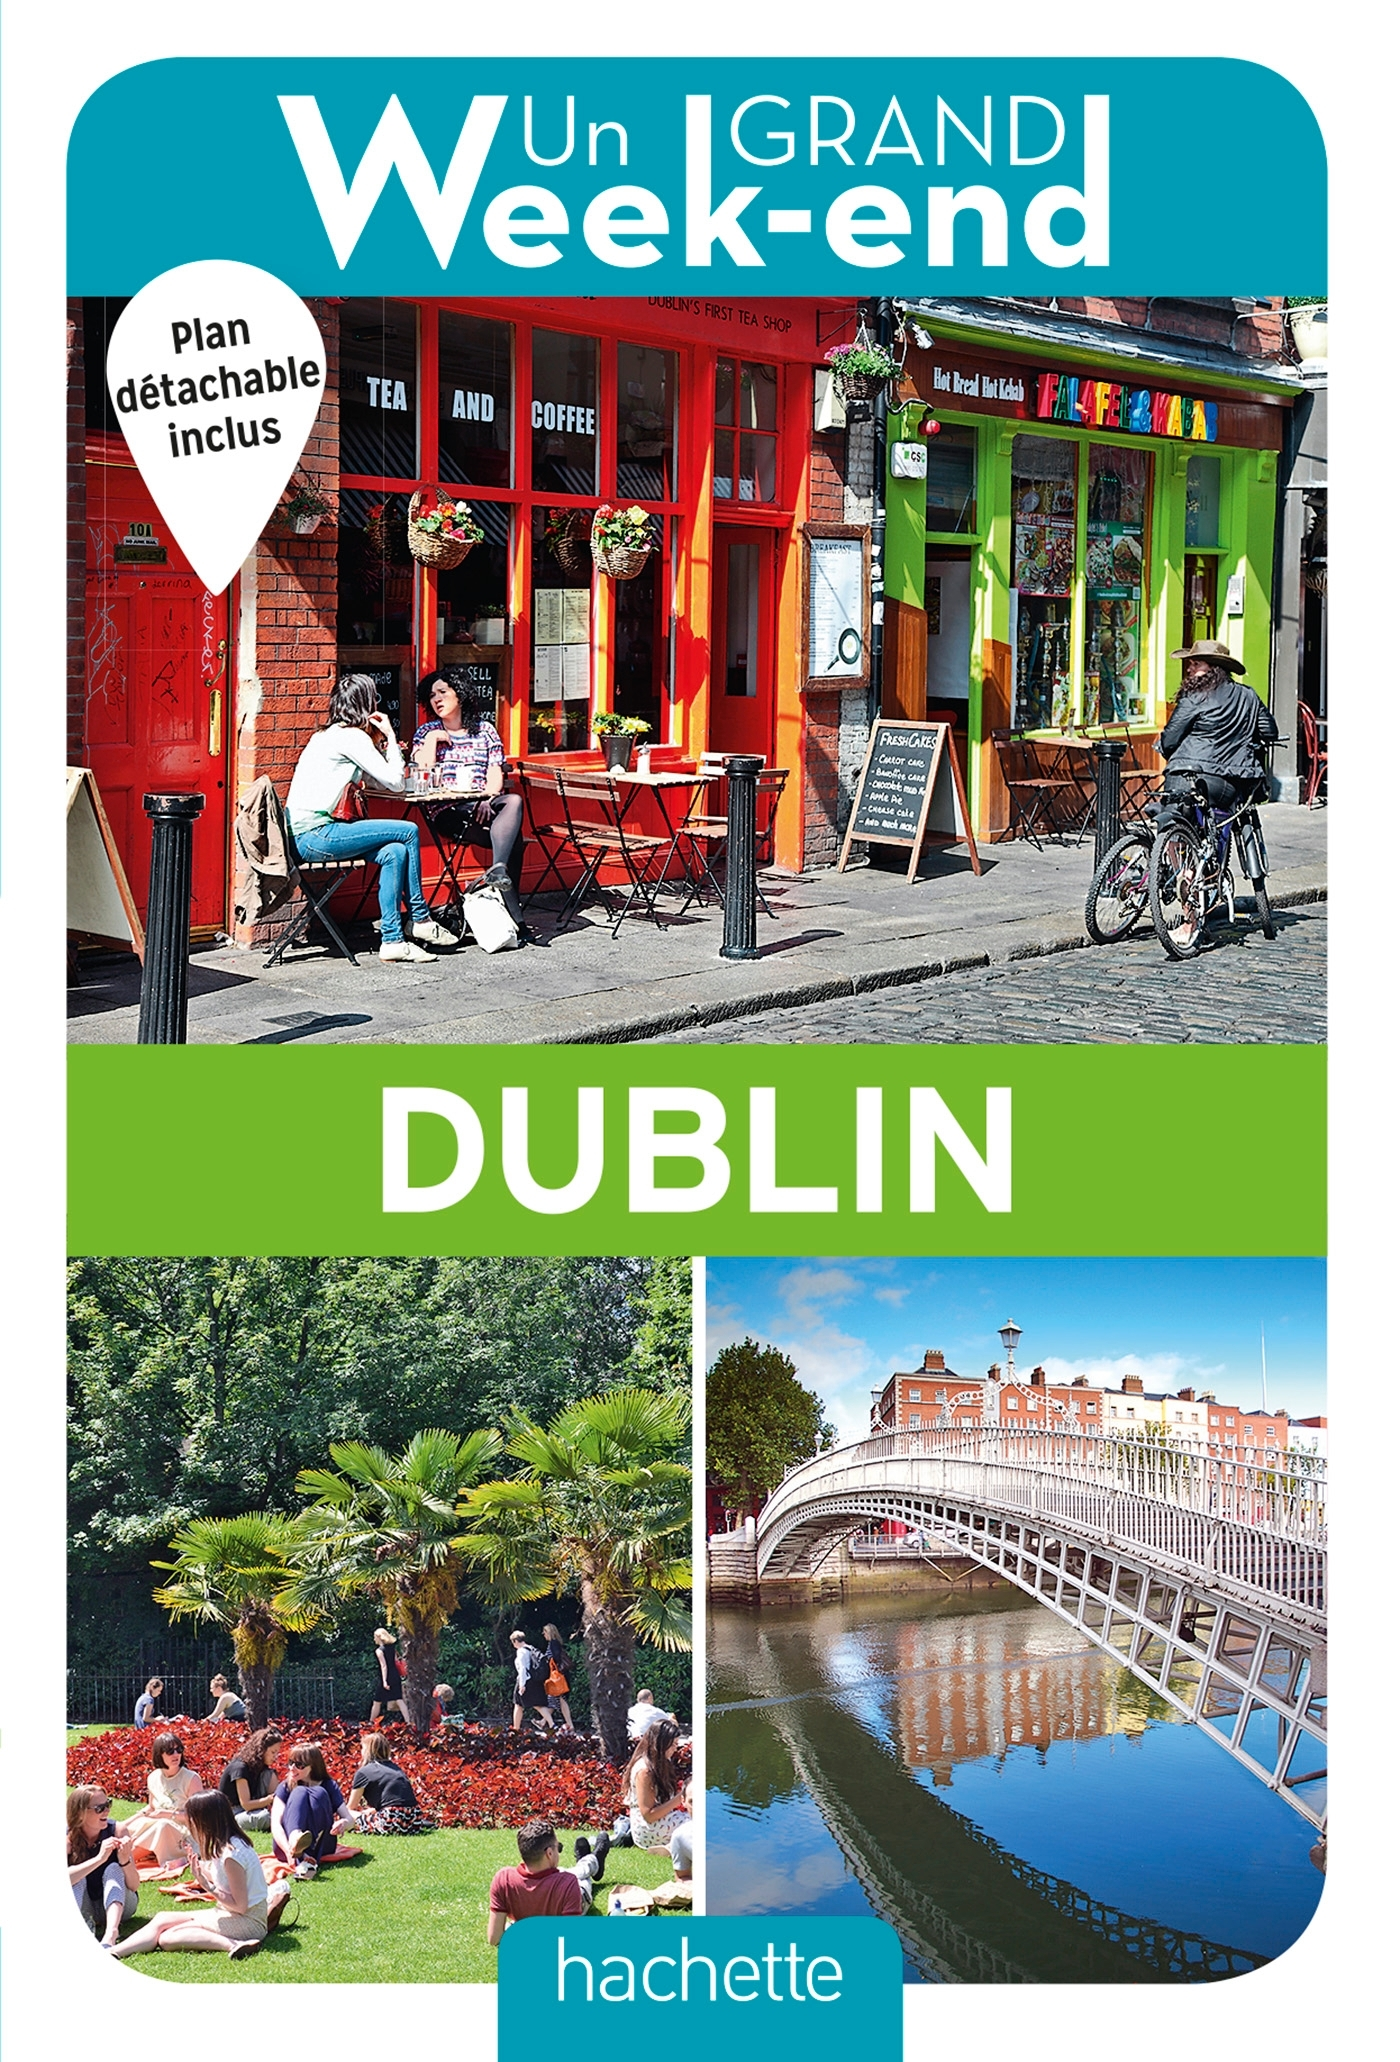 UN GRAND WEEK-END A DUBLIN. LE GUIDE